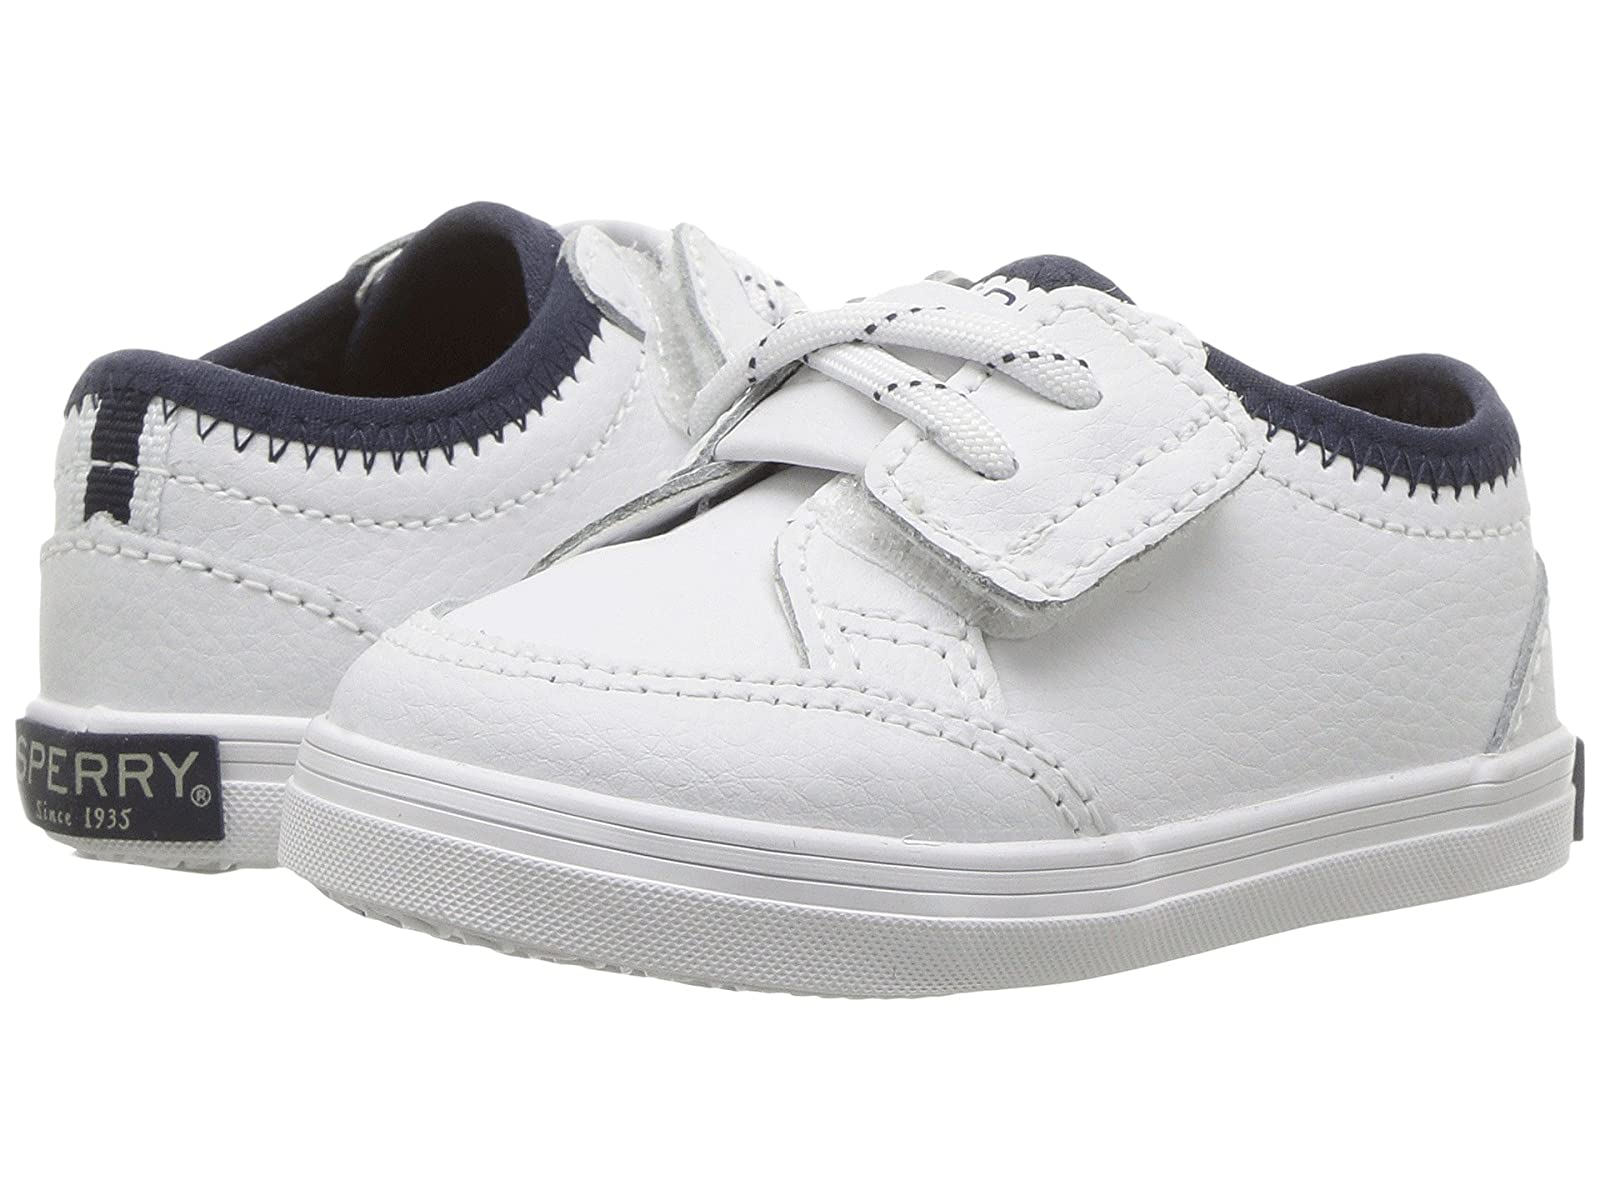 Sperry Kids Deckfin Crib Jr. (Infant/Toddler)Atmospheric grades have affordable shoes